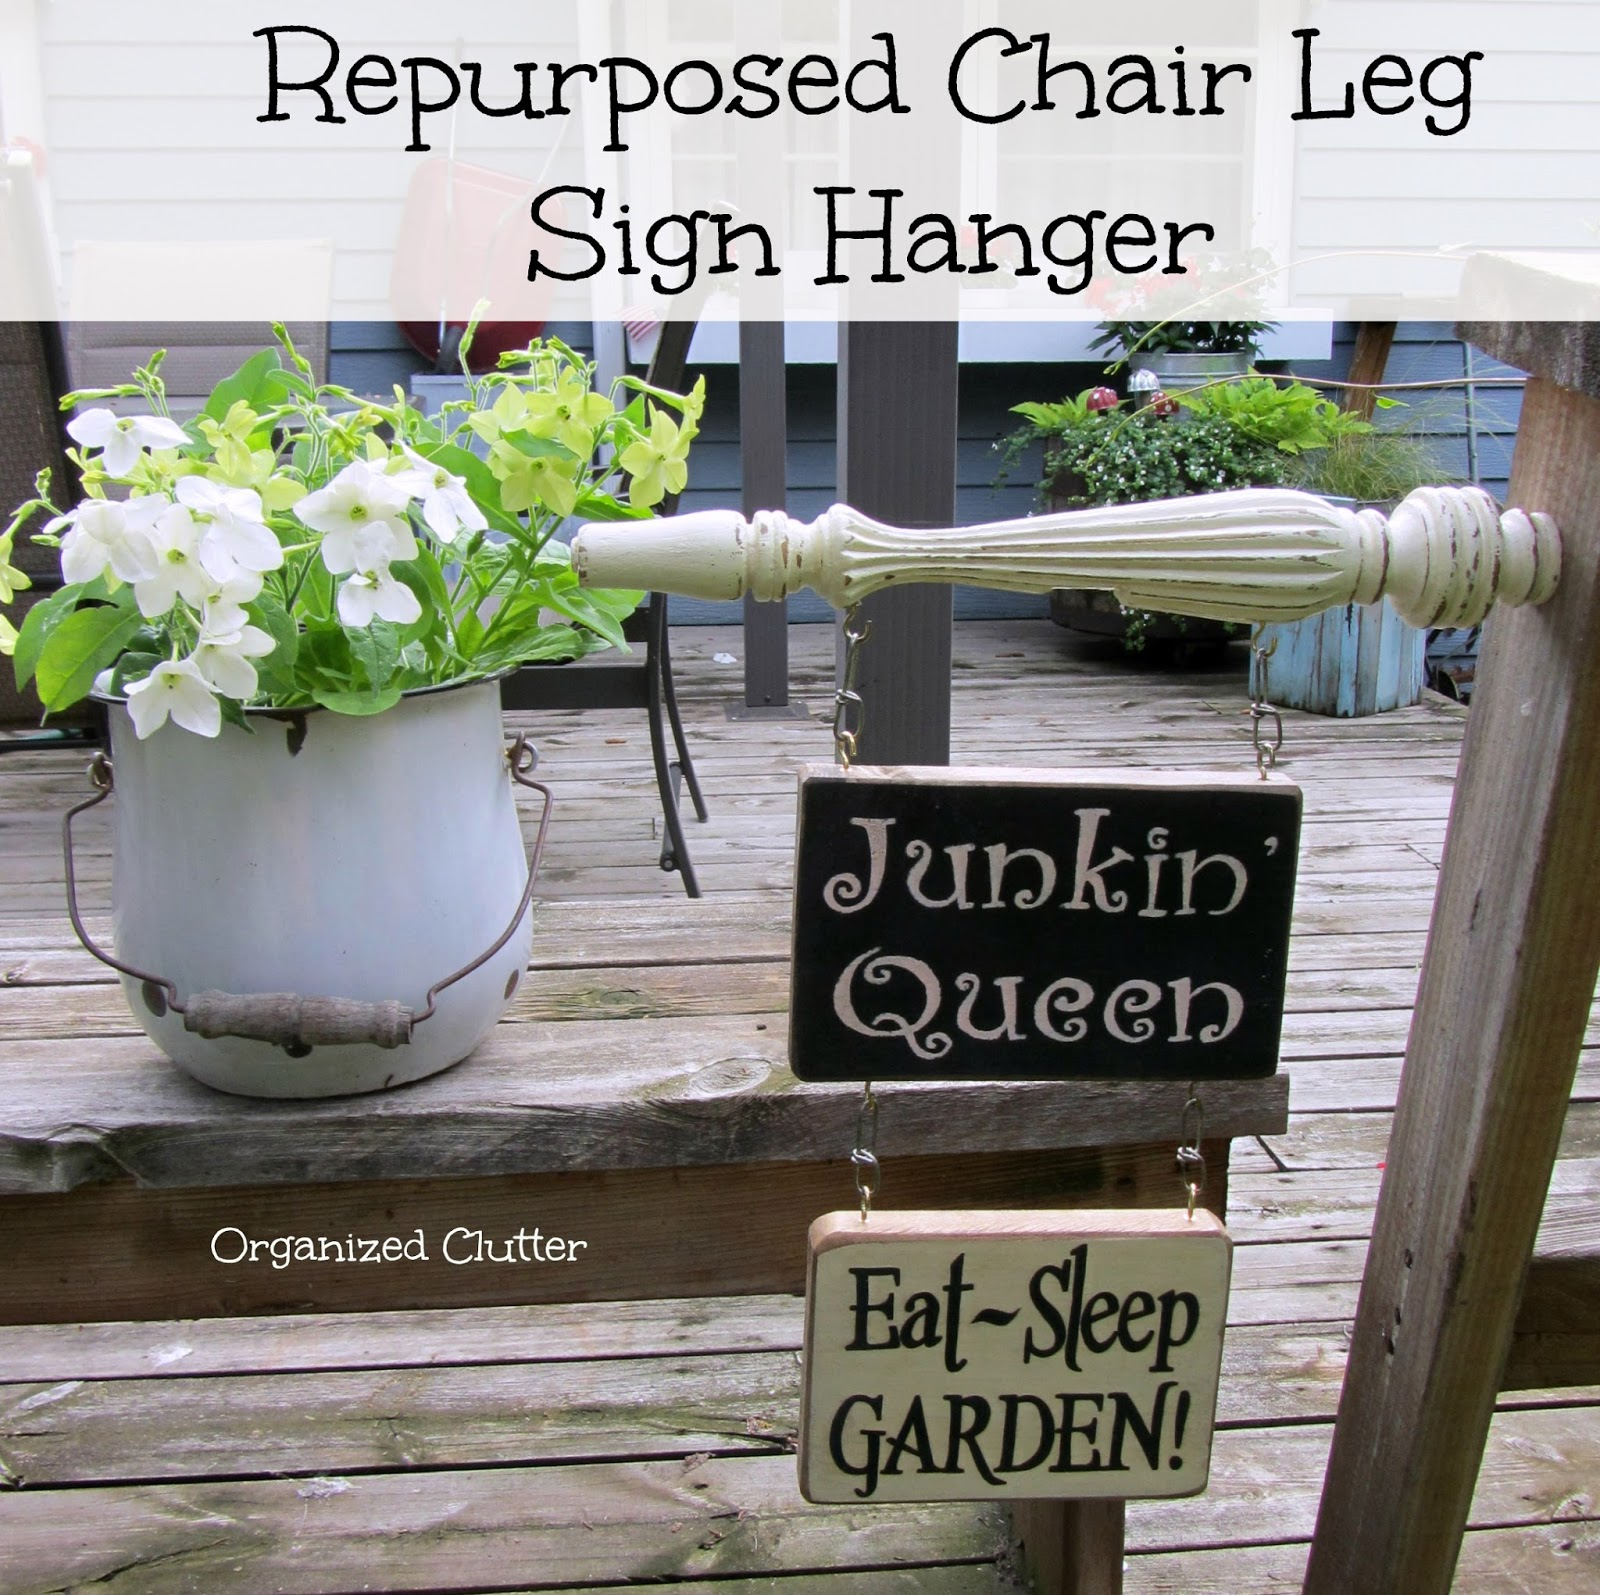 Chair Leg Garden Sign Holder www.organizedclutterqueen.blogspot.com